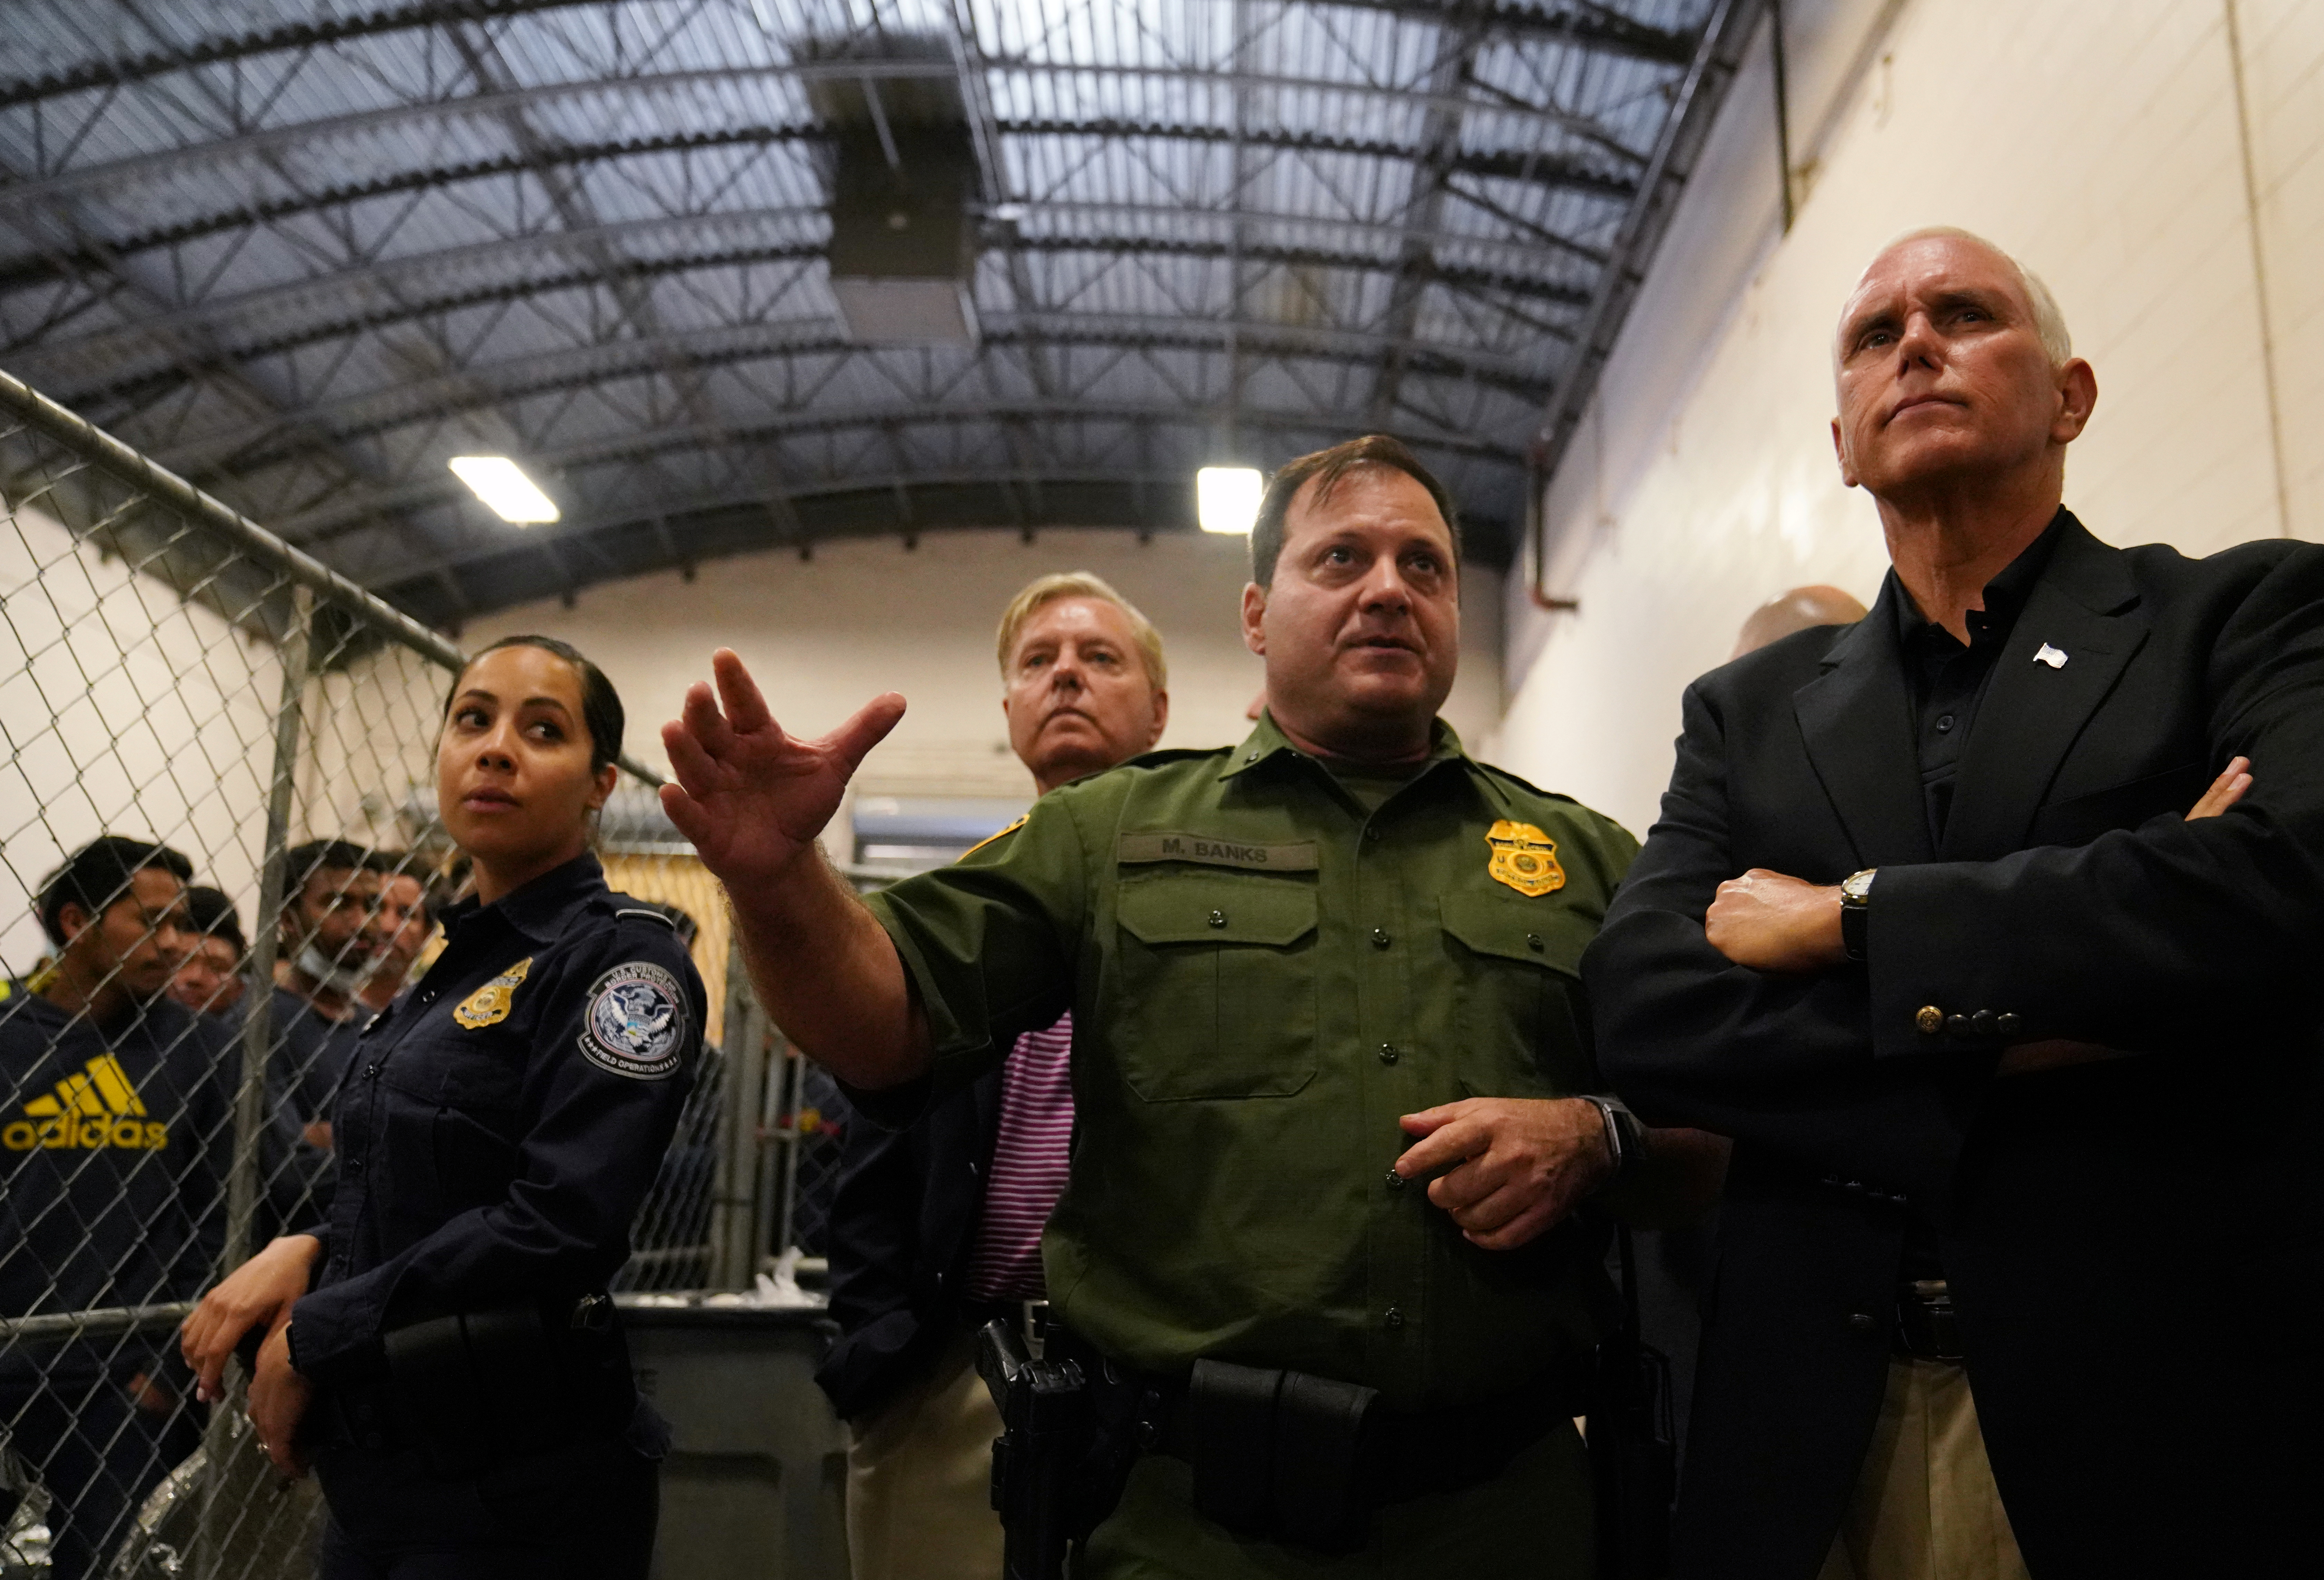 U.S. Vice President Mike Pence speaks with officers at a Border Patrol station in McAllen